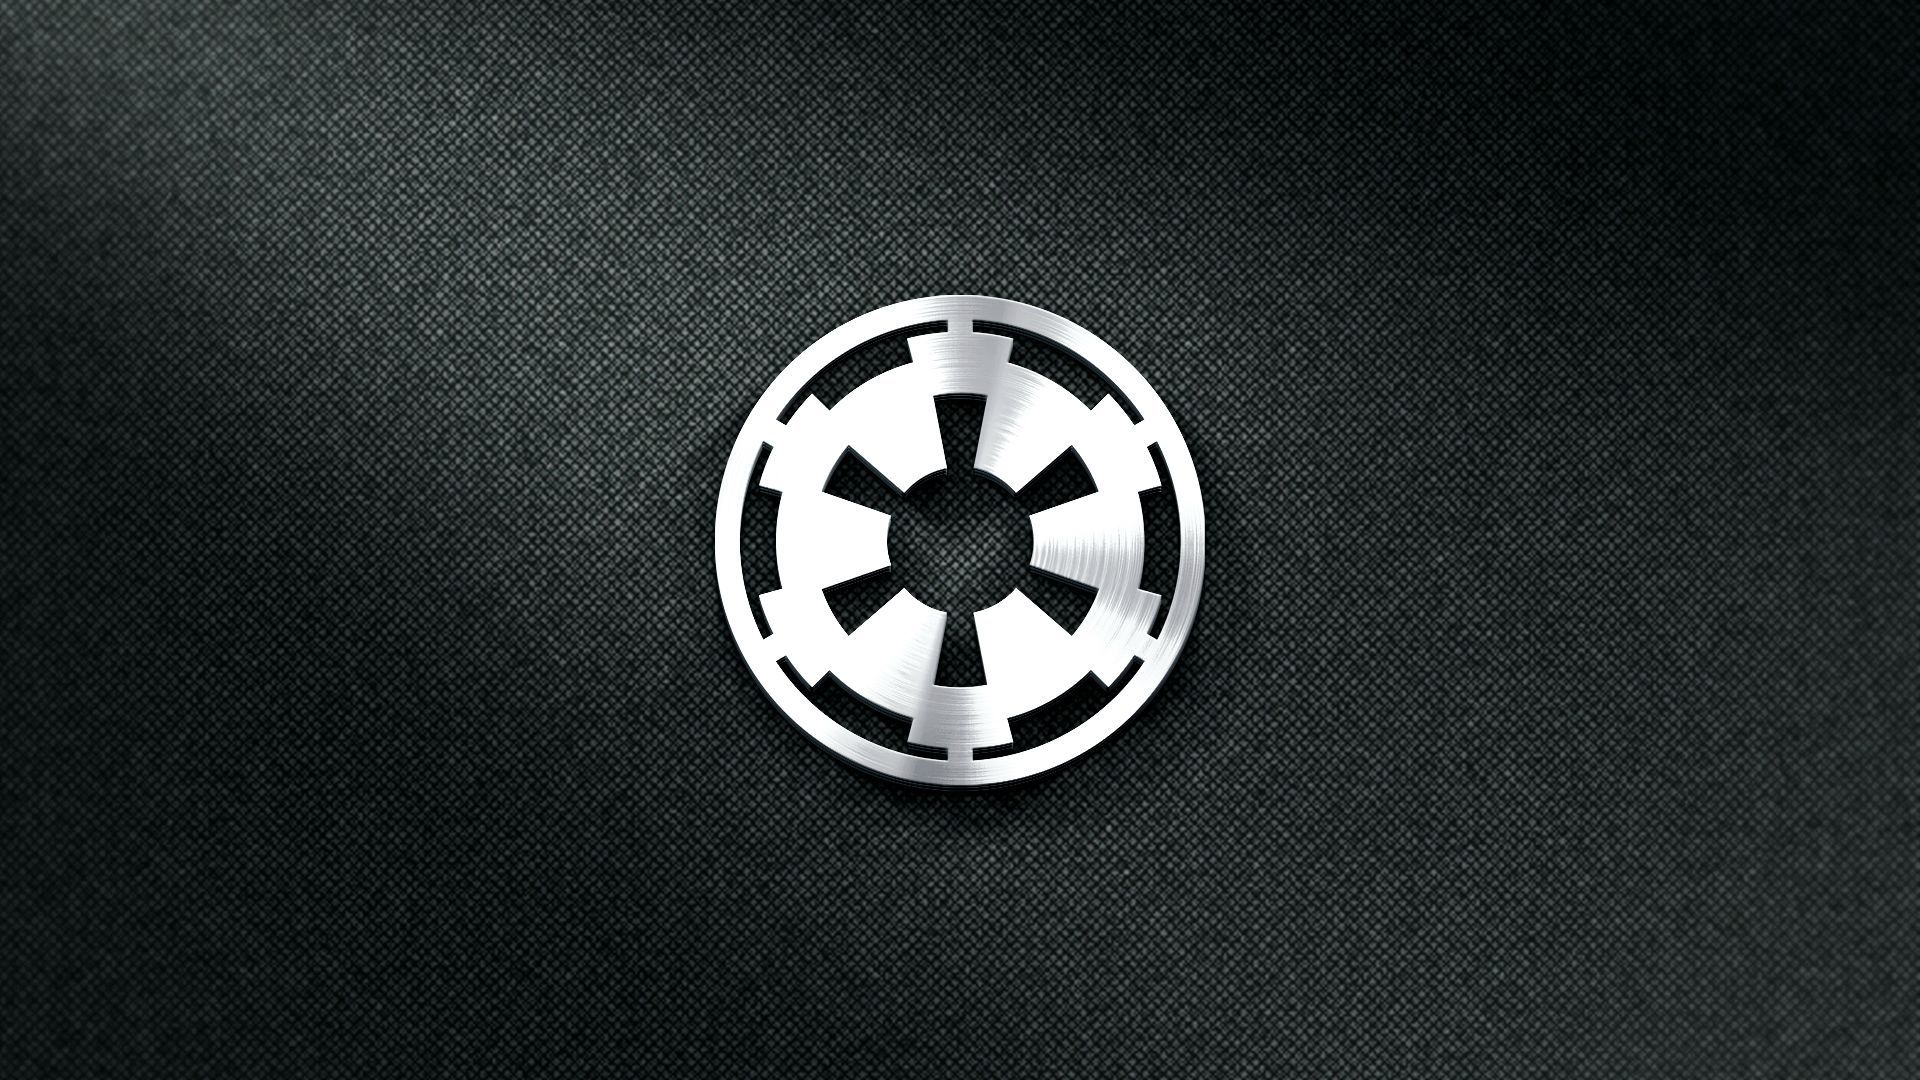 Star Wars Empire Wallpaper High Resolution Star Wars Empire Logo Empire Wallpaper Star Wars Empire